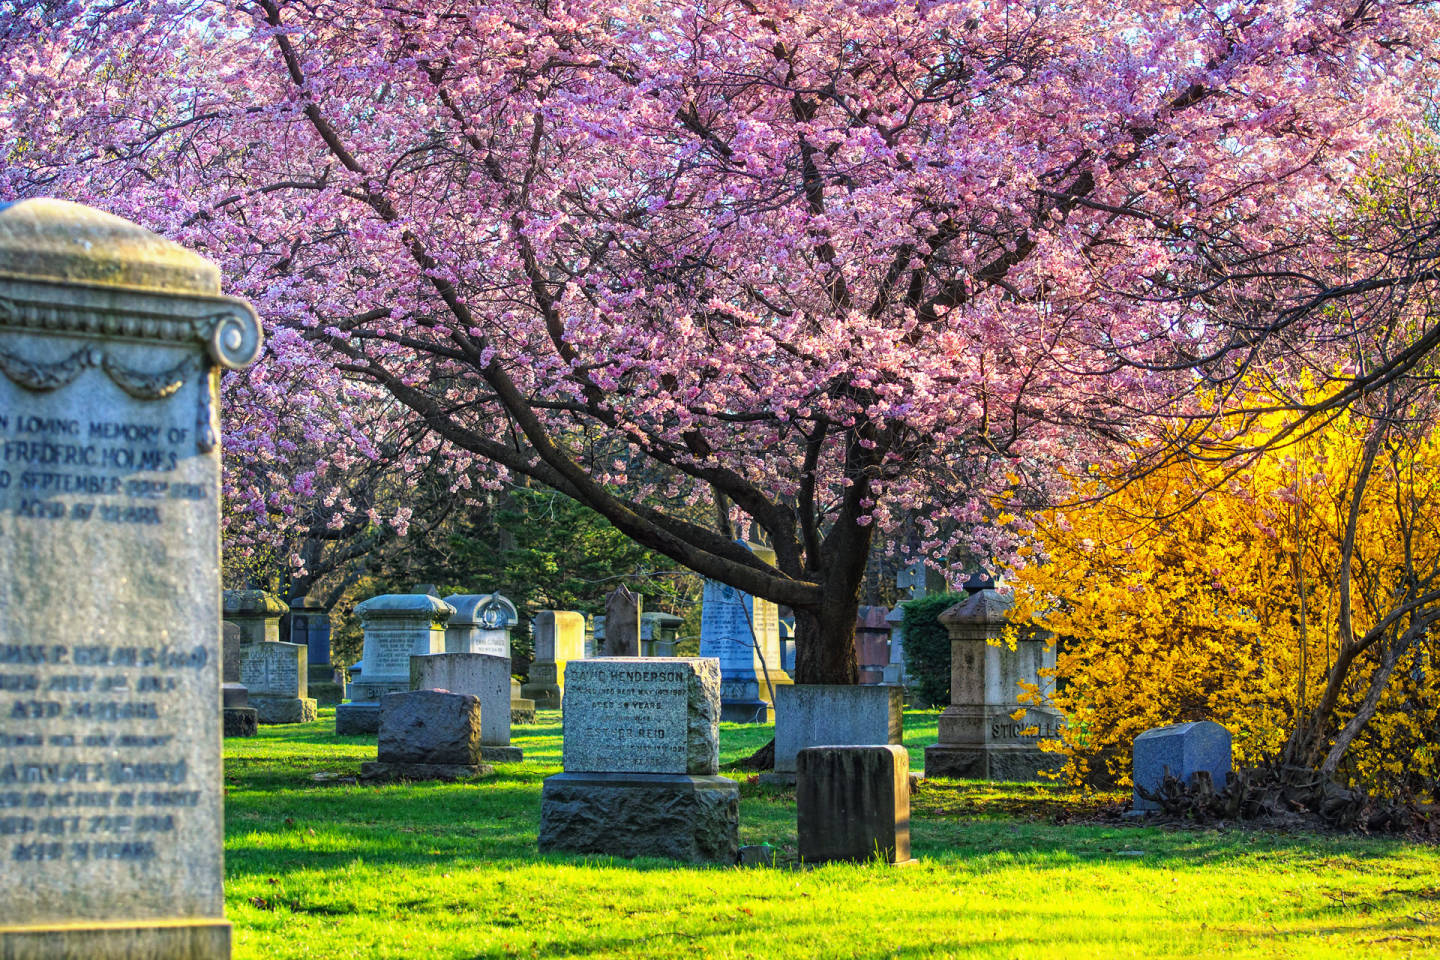 Cherry blossom at Mount Pleasant Cemetery in Toronto